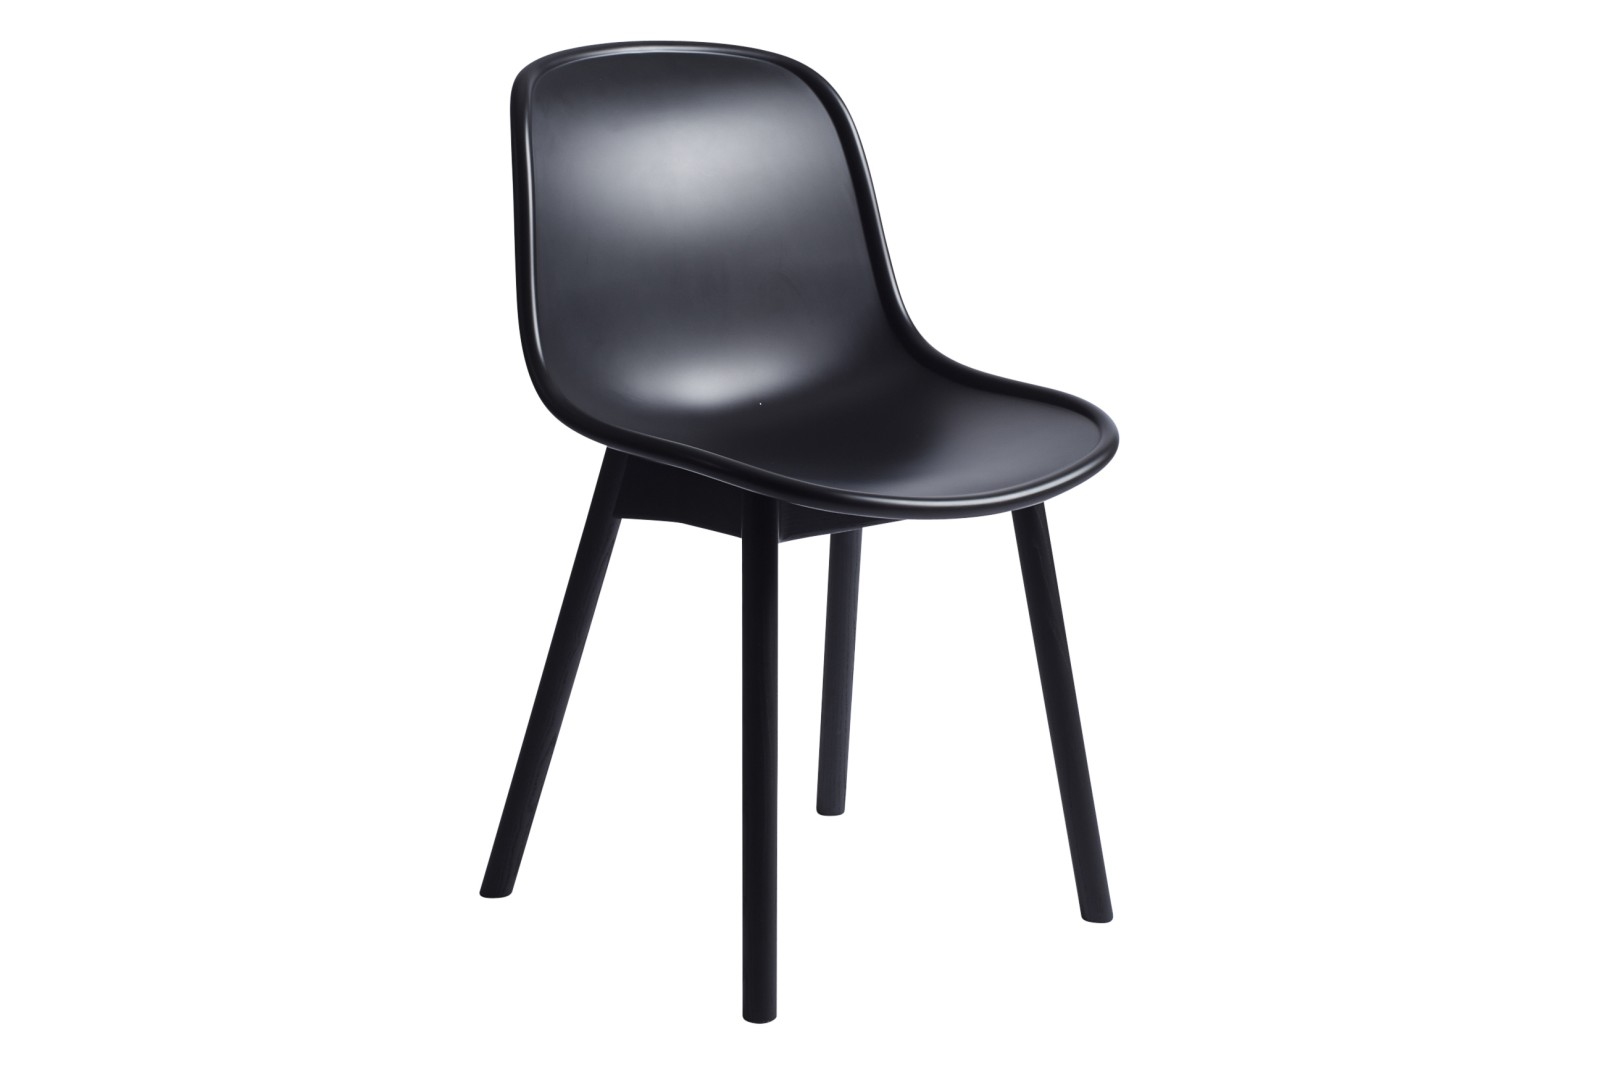 Neu 13 Dining Chair Plastic Soft Black, Wood Soft Black Oak